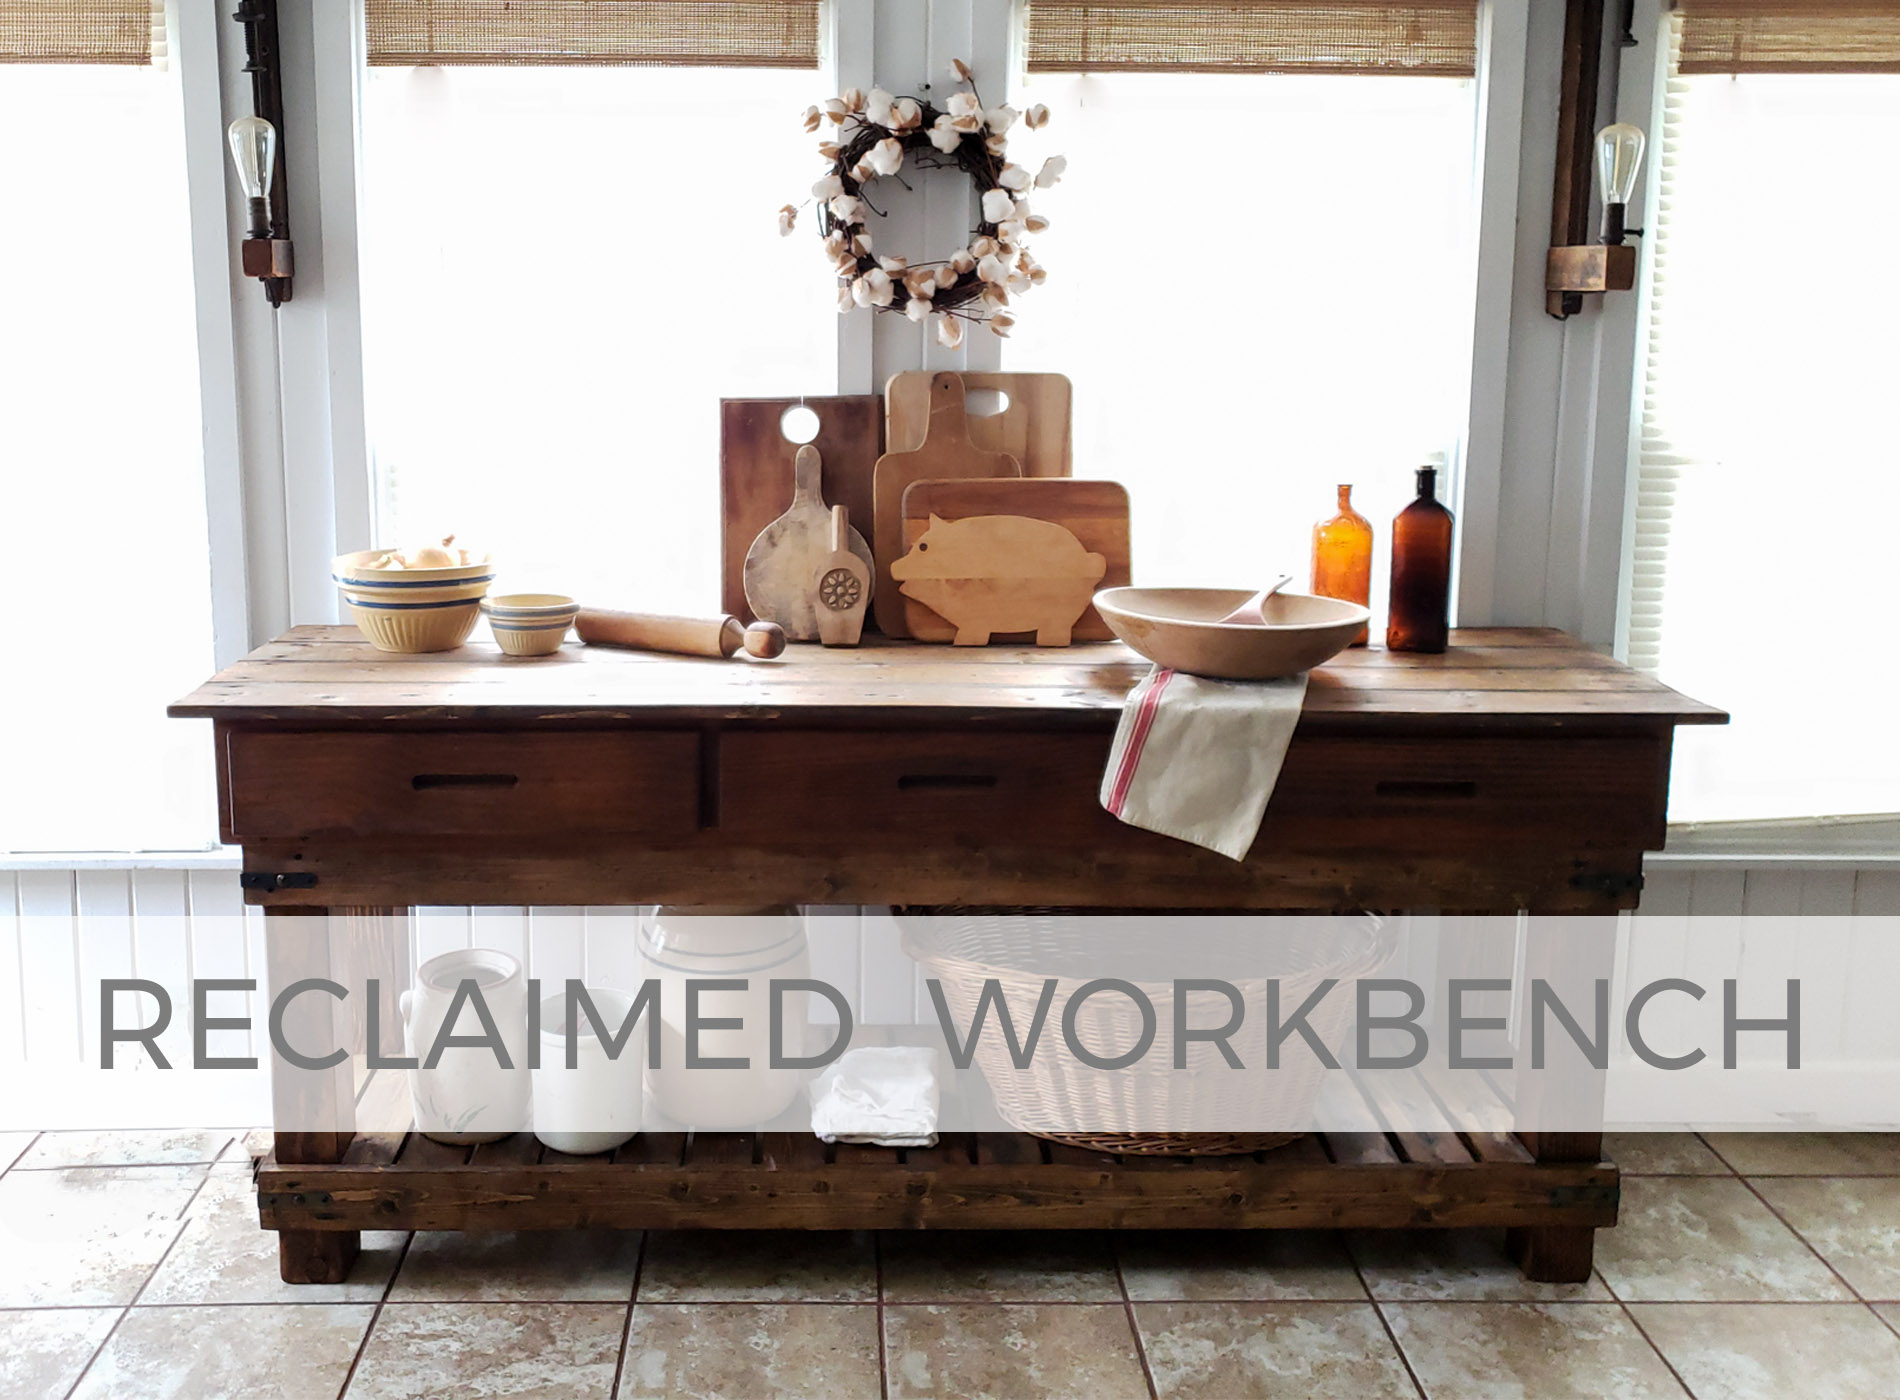 Rustic Farmhouse Reclaimed Workbench built by Larissa of Prodigal Pieces | prodigalpieces.com